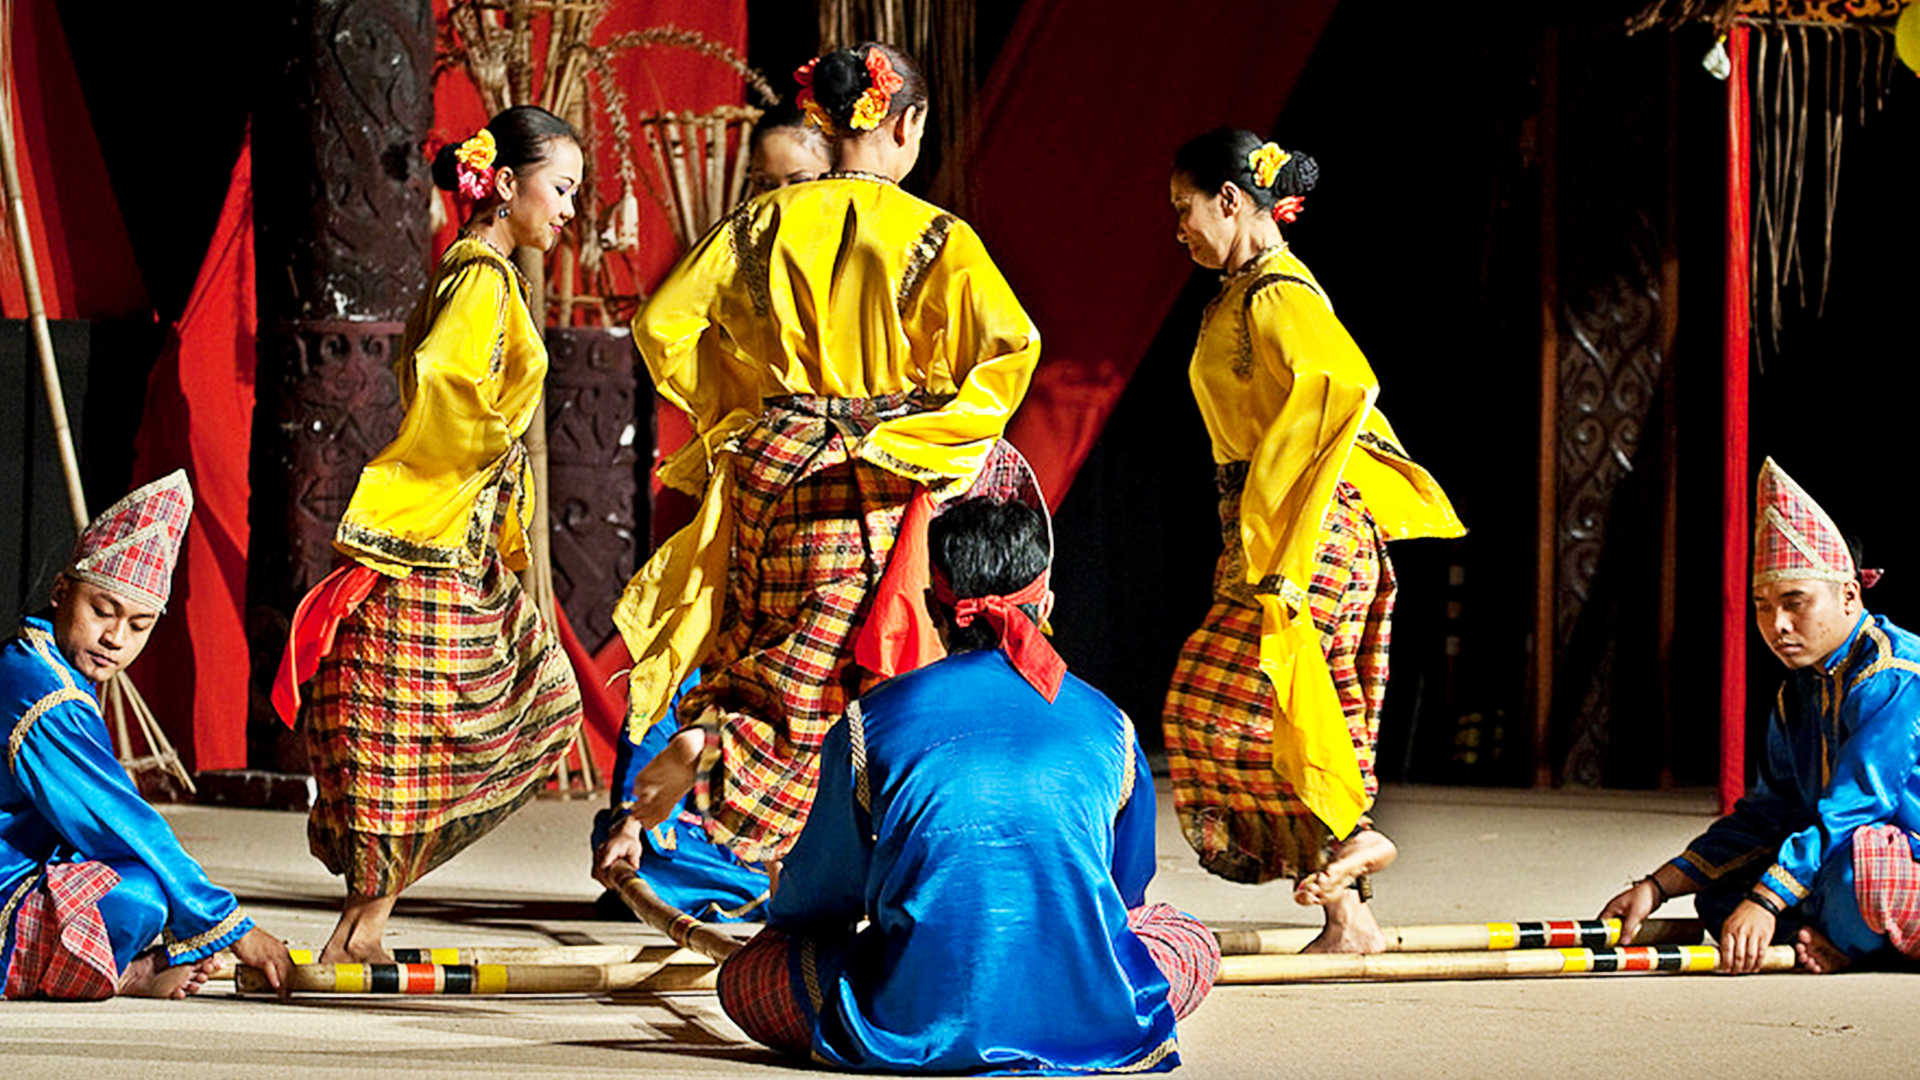 Tinikling is a traditional Philippine folk dance which originated during the Spanish colonial era. The dance involves two people beating, tapping, and sliding bamboo poles on the ground and against each other in coordination with one or more dancers who step over and in between the poles in a dance.